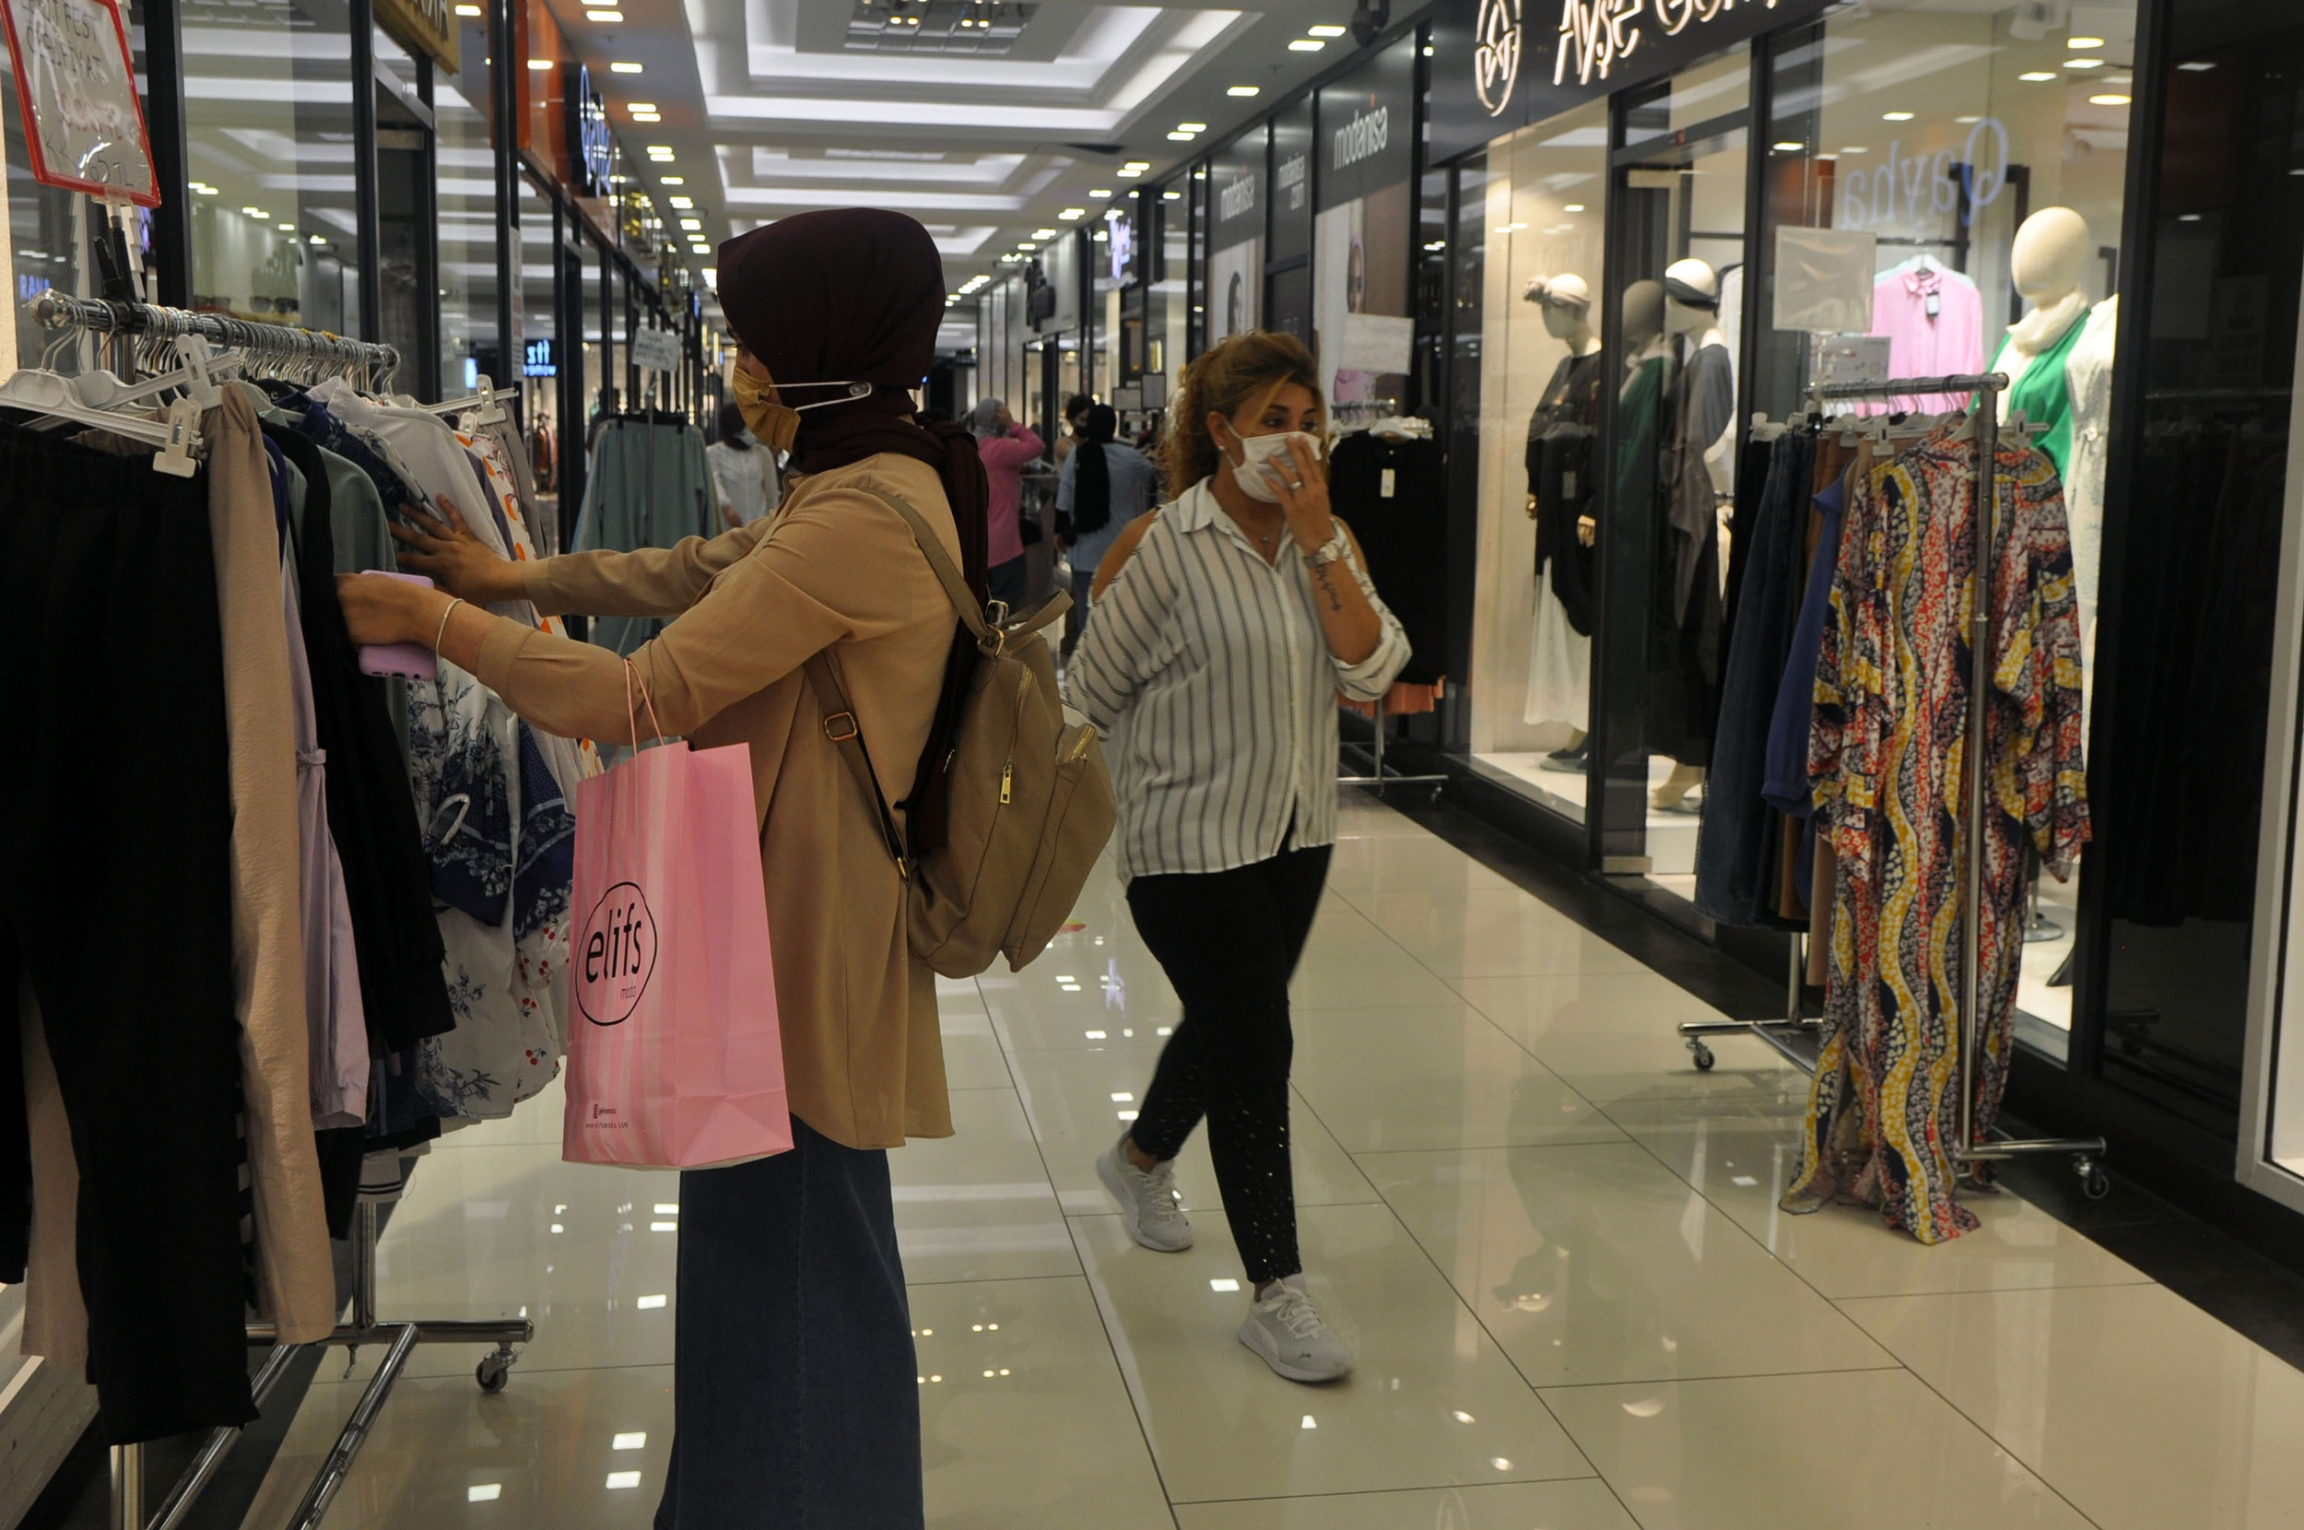 Women shop at Zeruj Port Shopping Mall in Istanbul, which is primarily devoted to modest fashion.